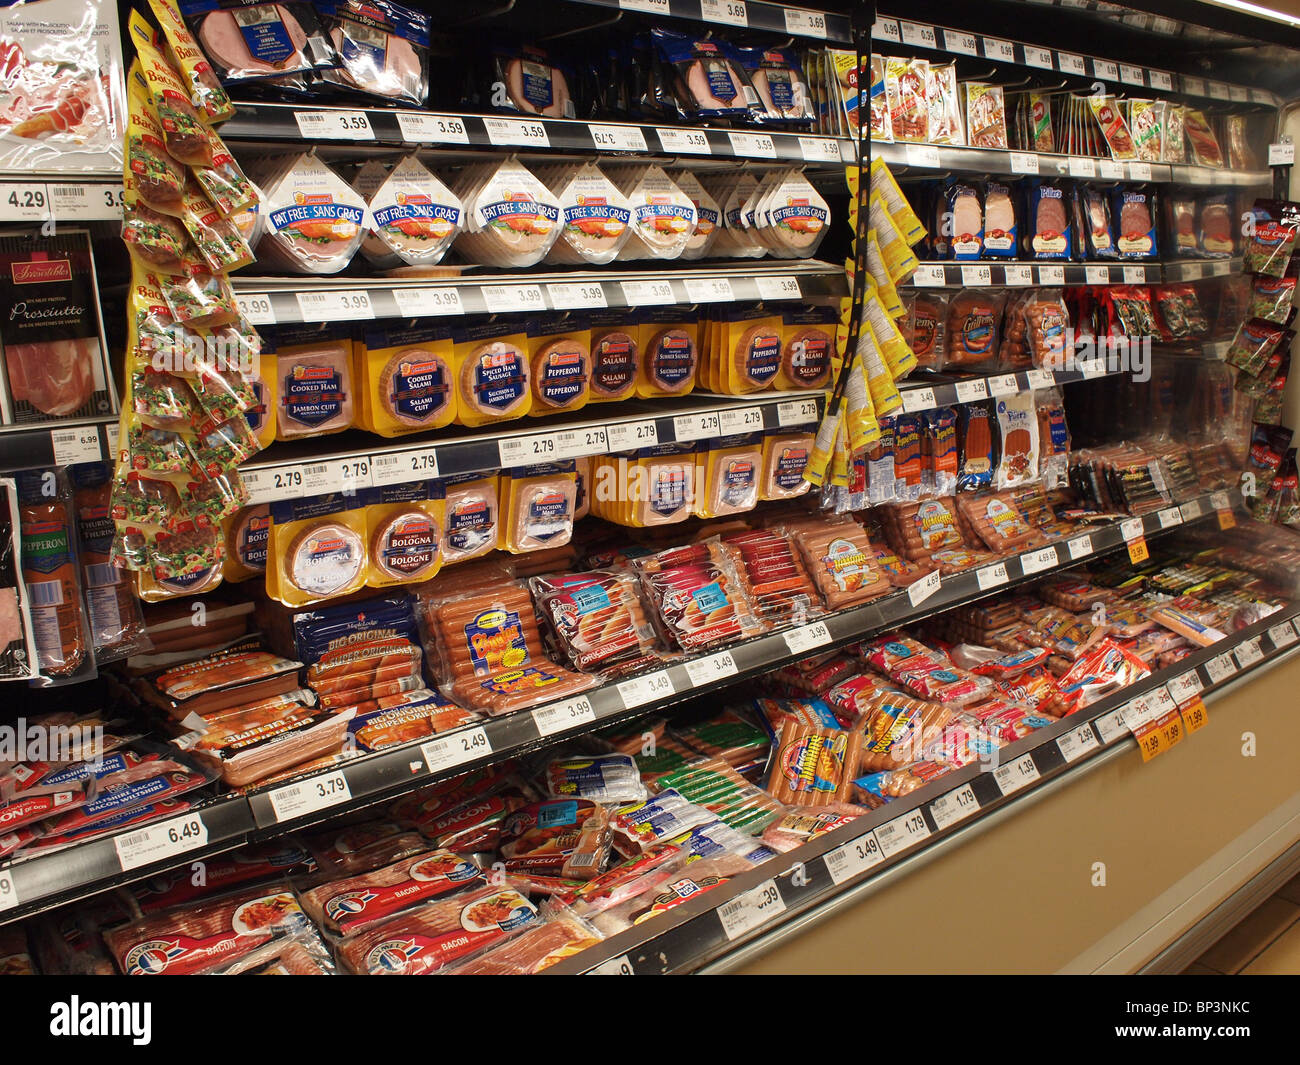 Packaged luncheon meats in supermarket - Stock Image